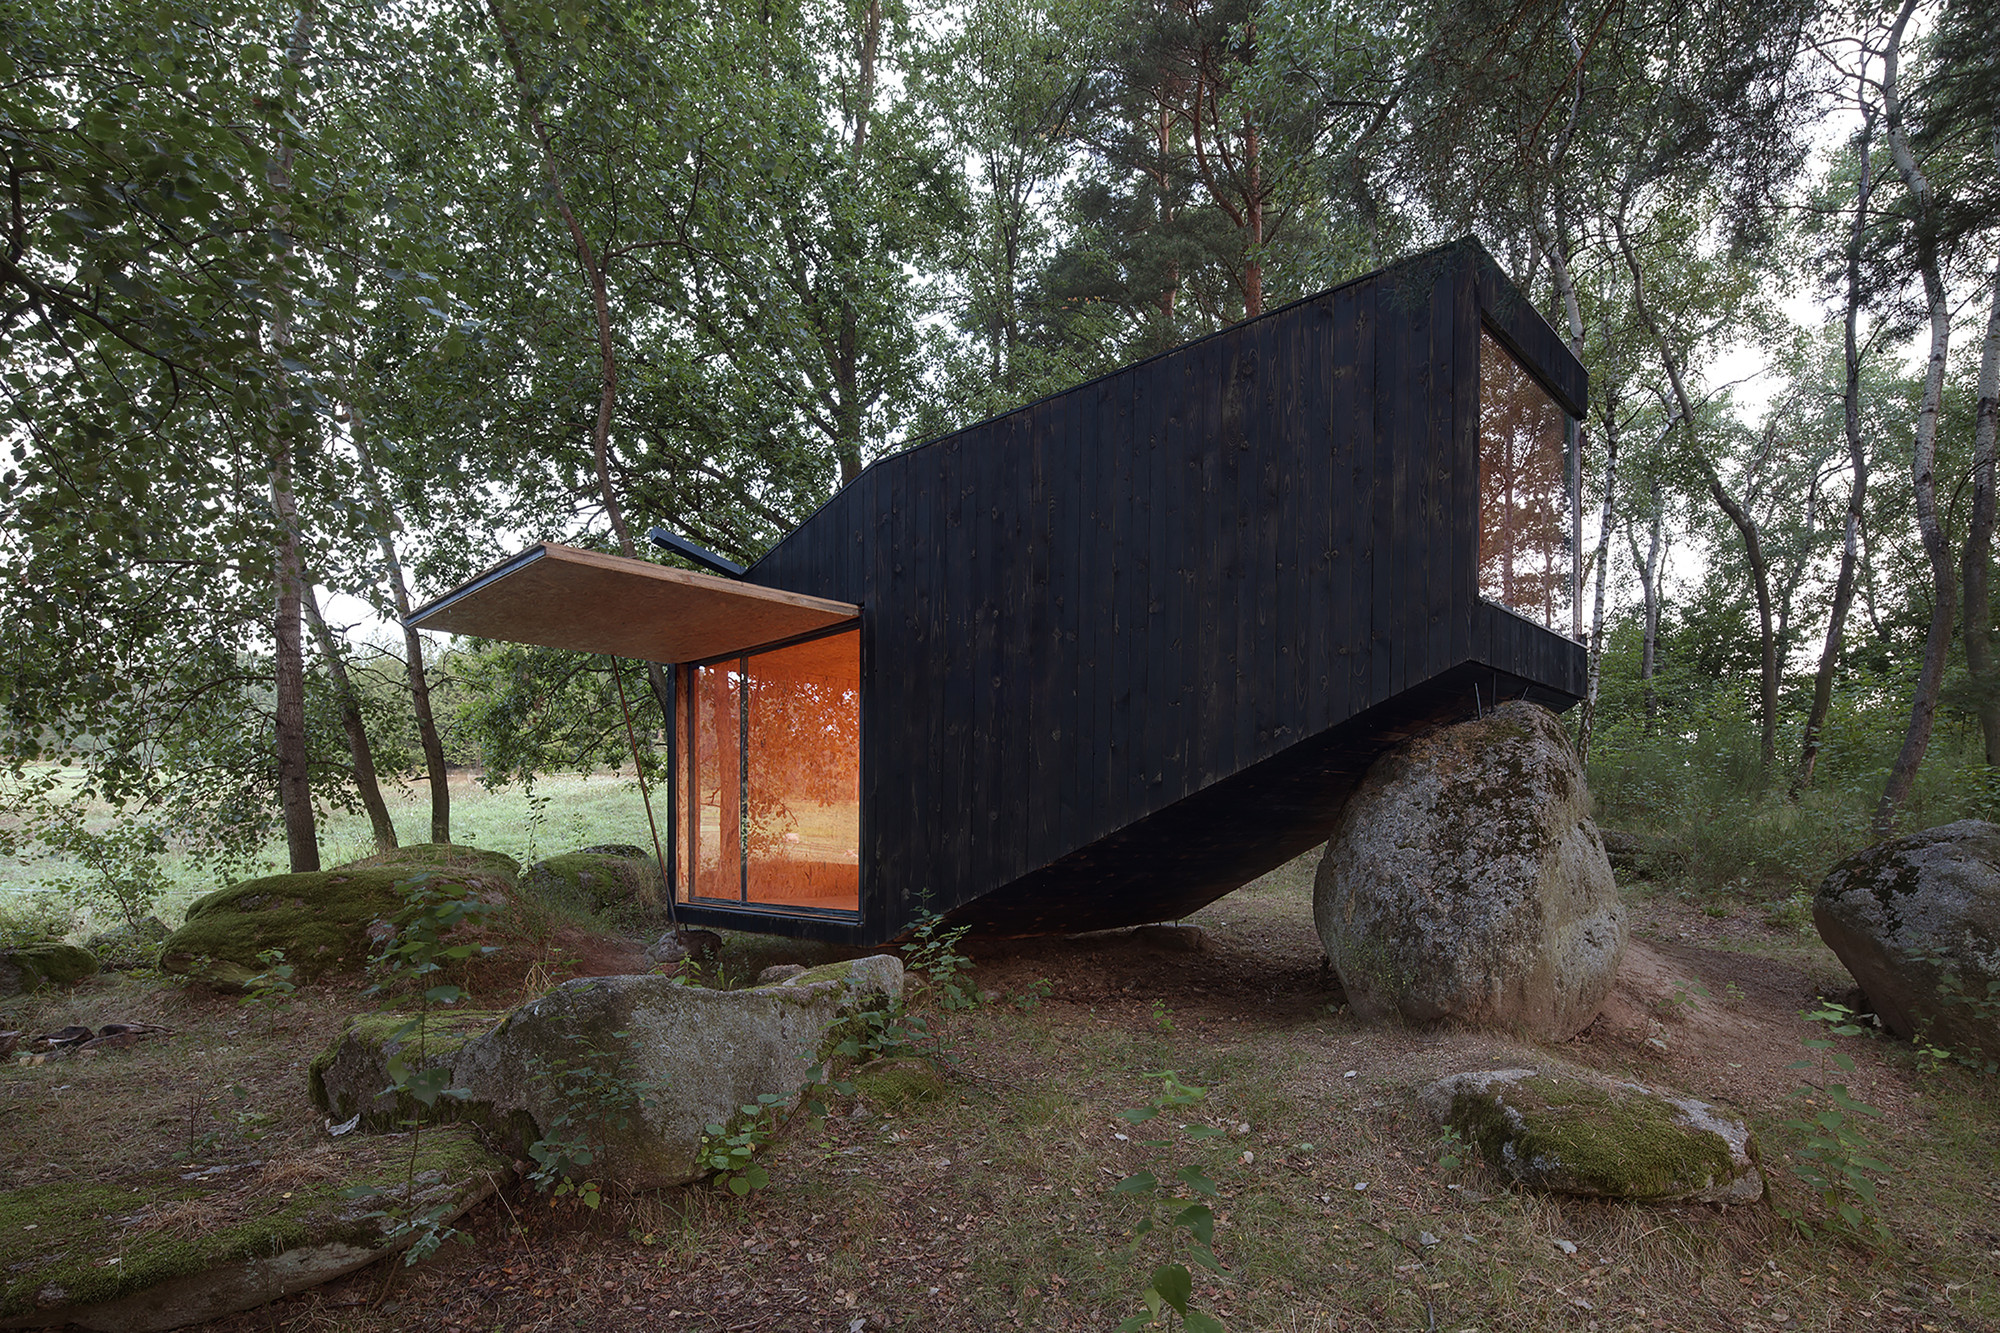 Forest Retreat / Uhlik architekti, © Jan Kudej